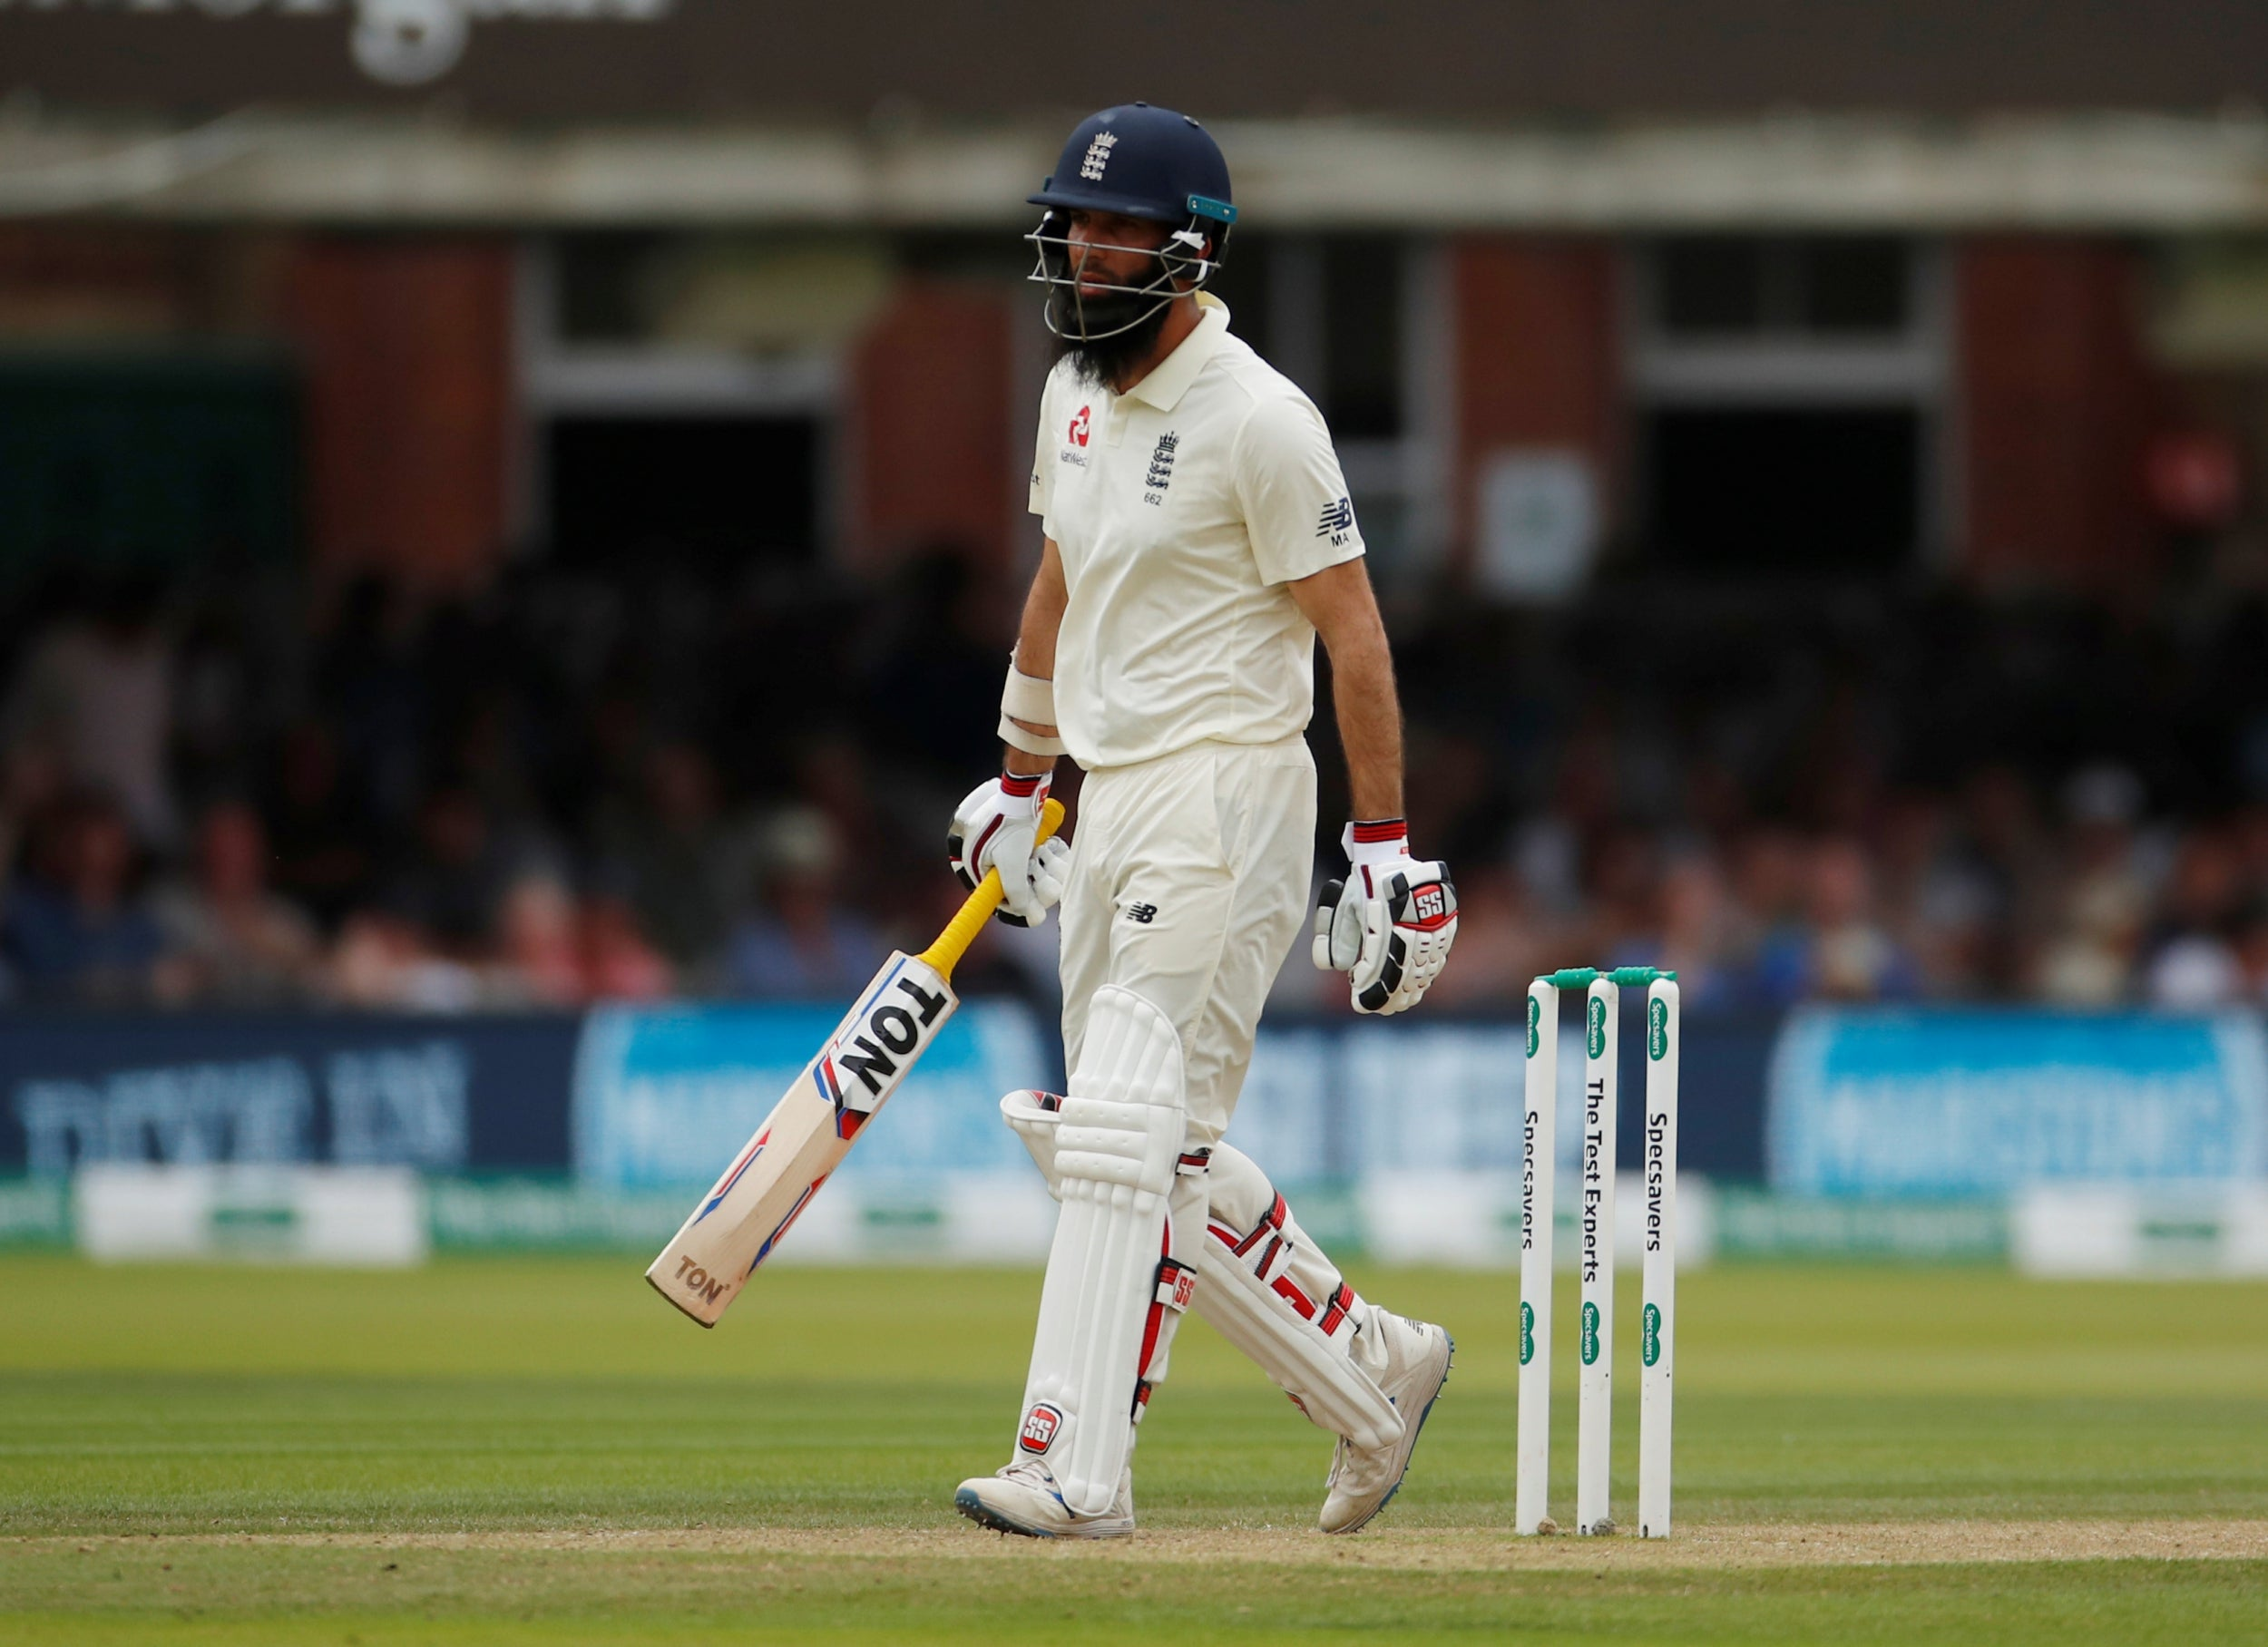 Moeen Ali dropped as England name 12-man squad for second Test with